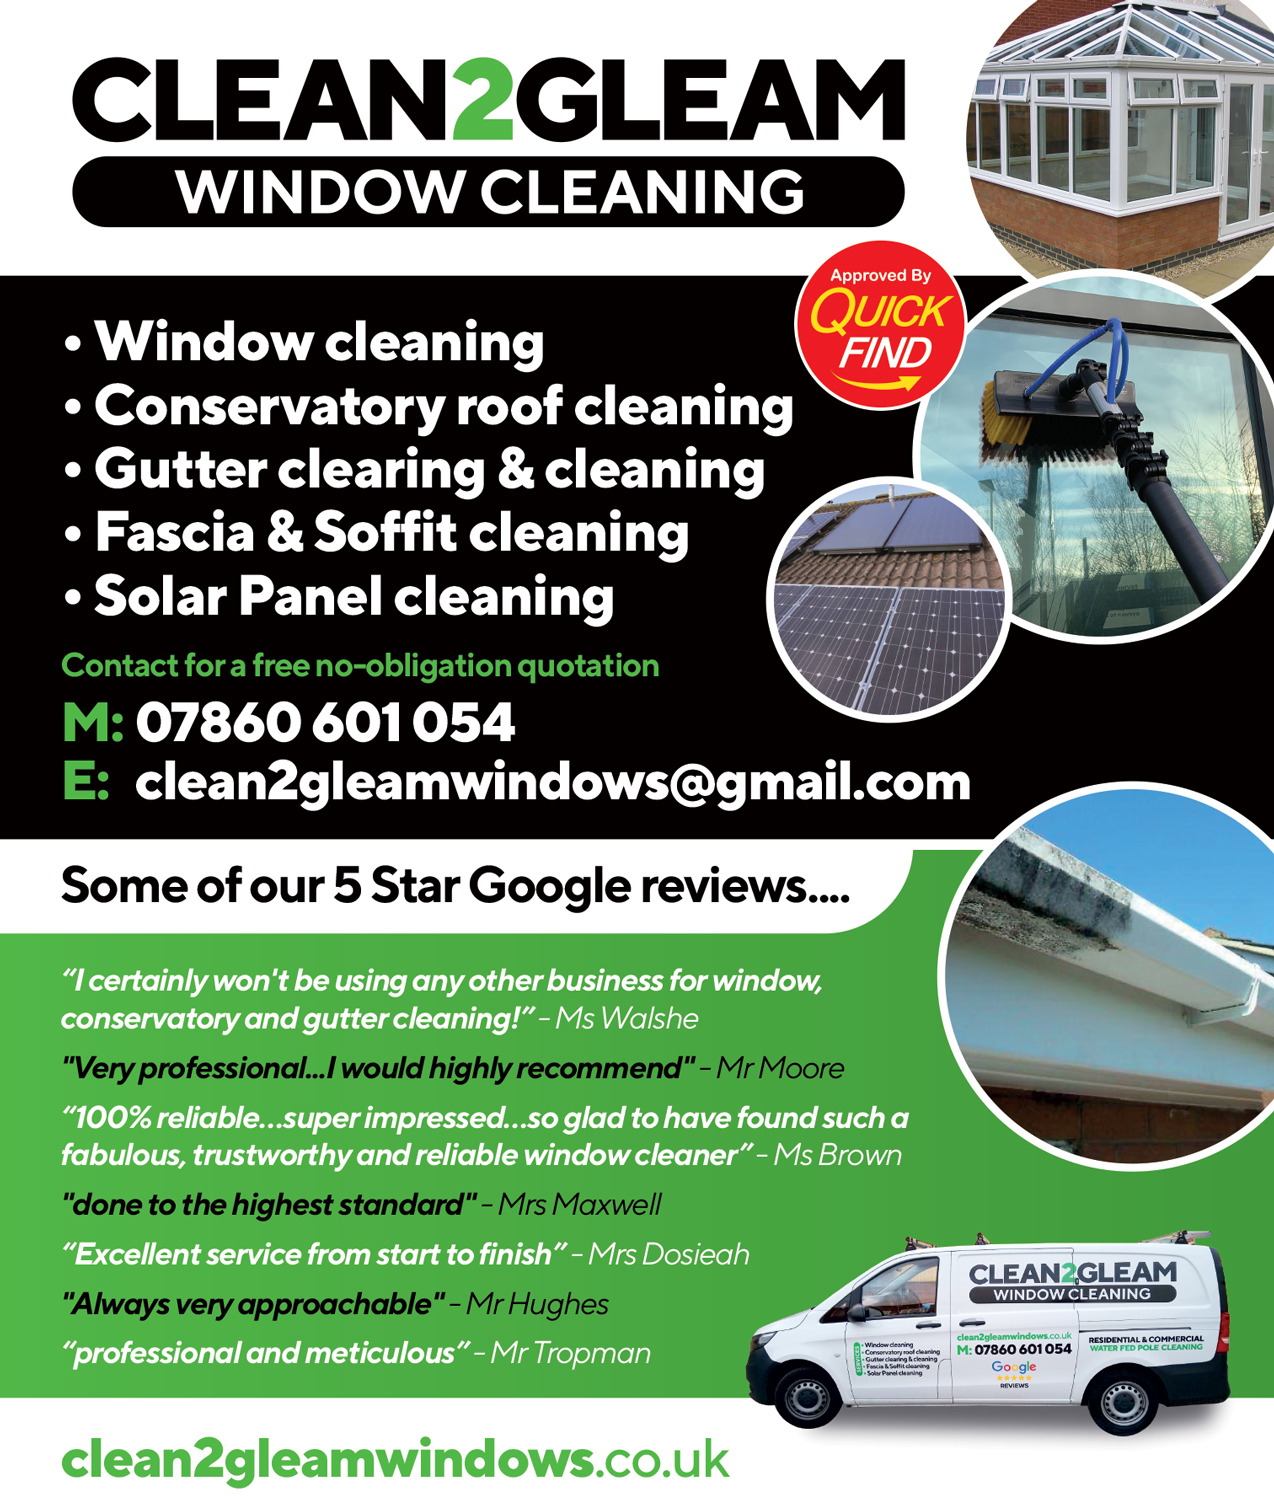 Clean2Gleam Window Cleaning